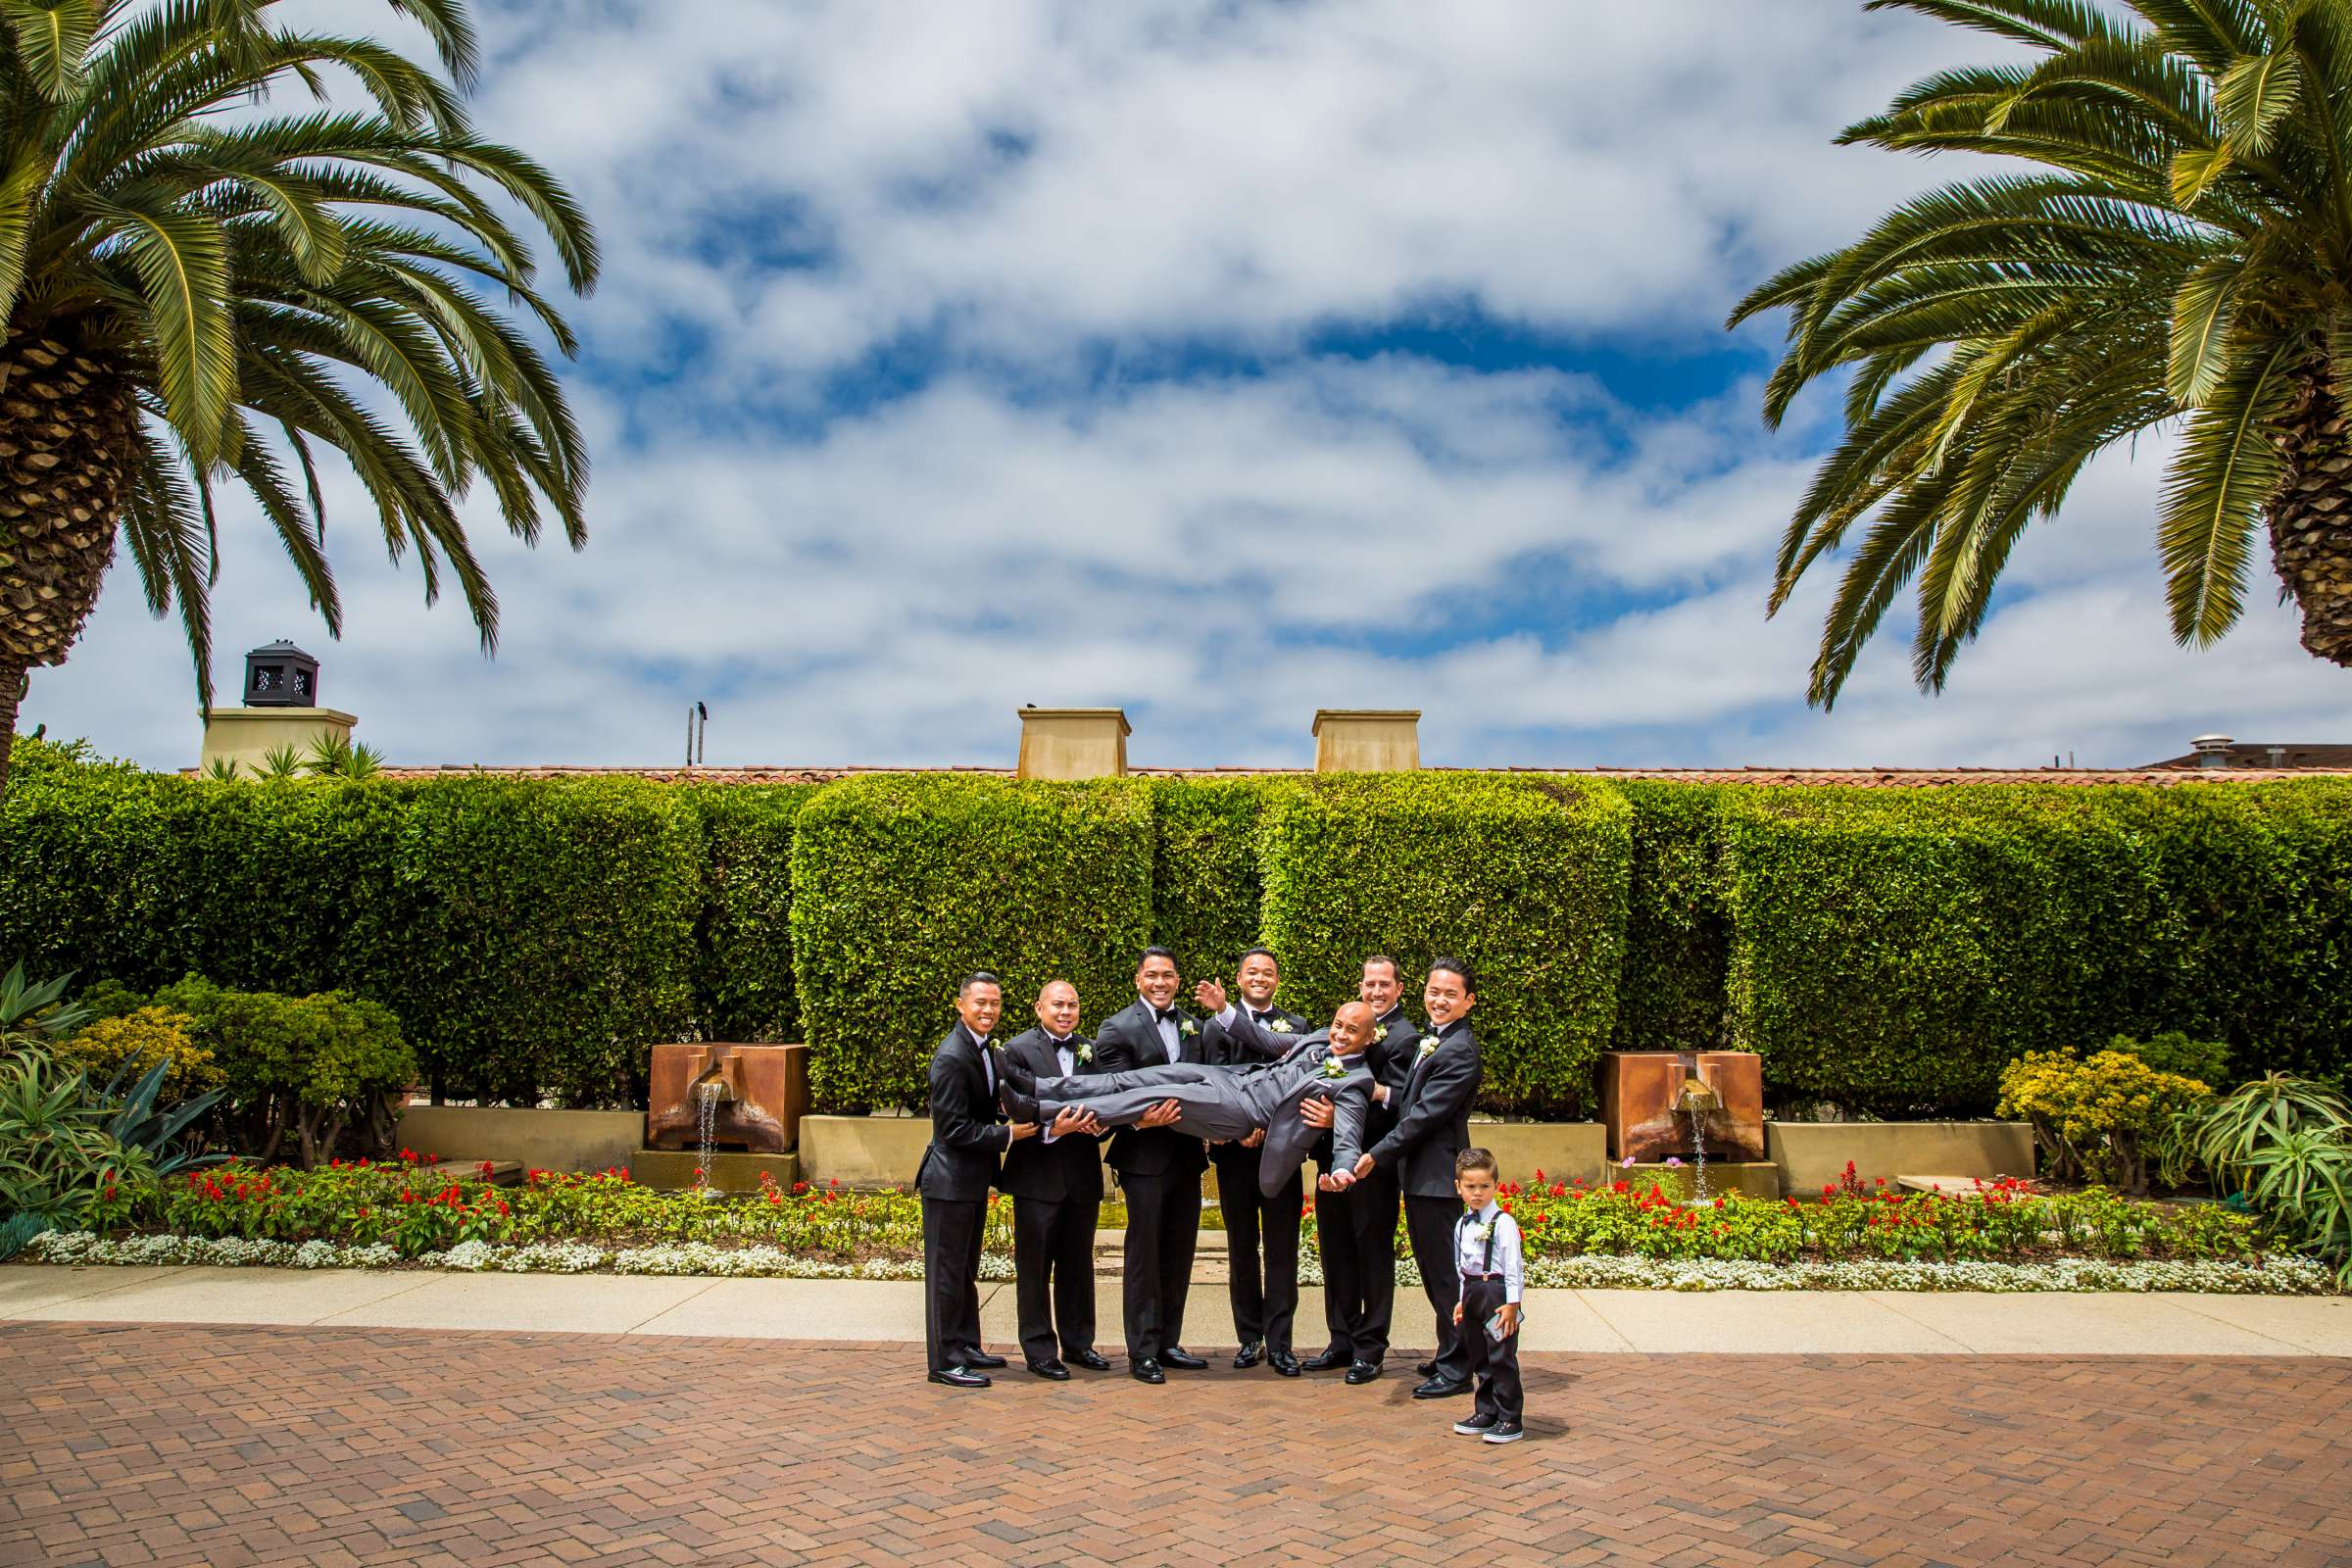 Scripps Seaside Forum Wedding coordinated by Lavish Weddings, Cindy and Justin Wedding Photo #381795 by True Photography